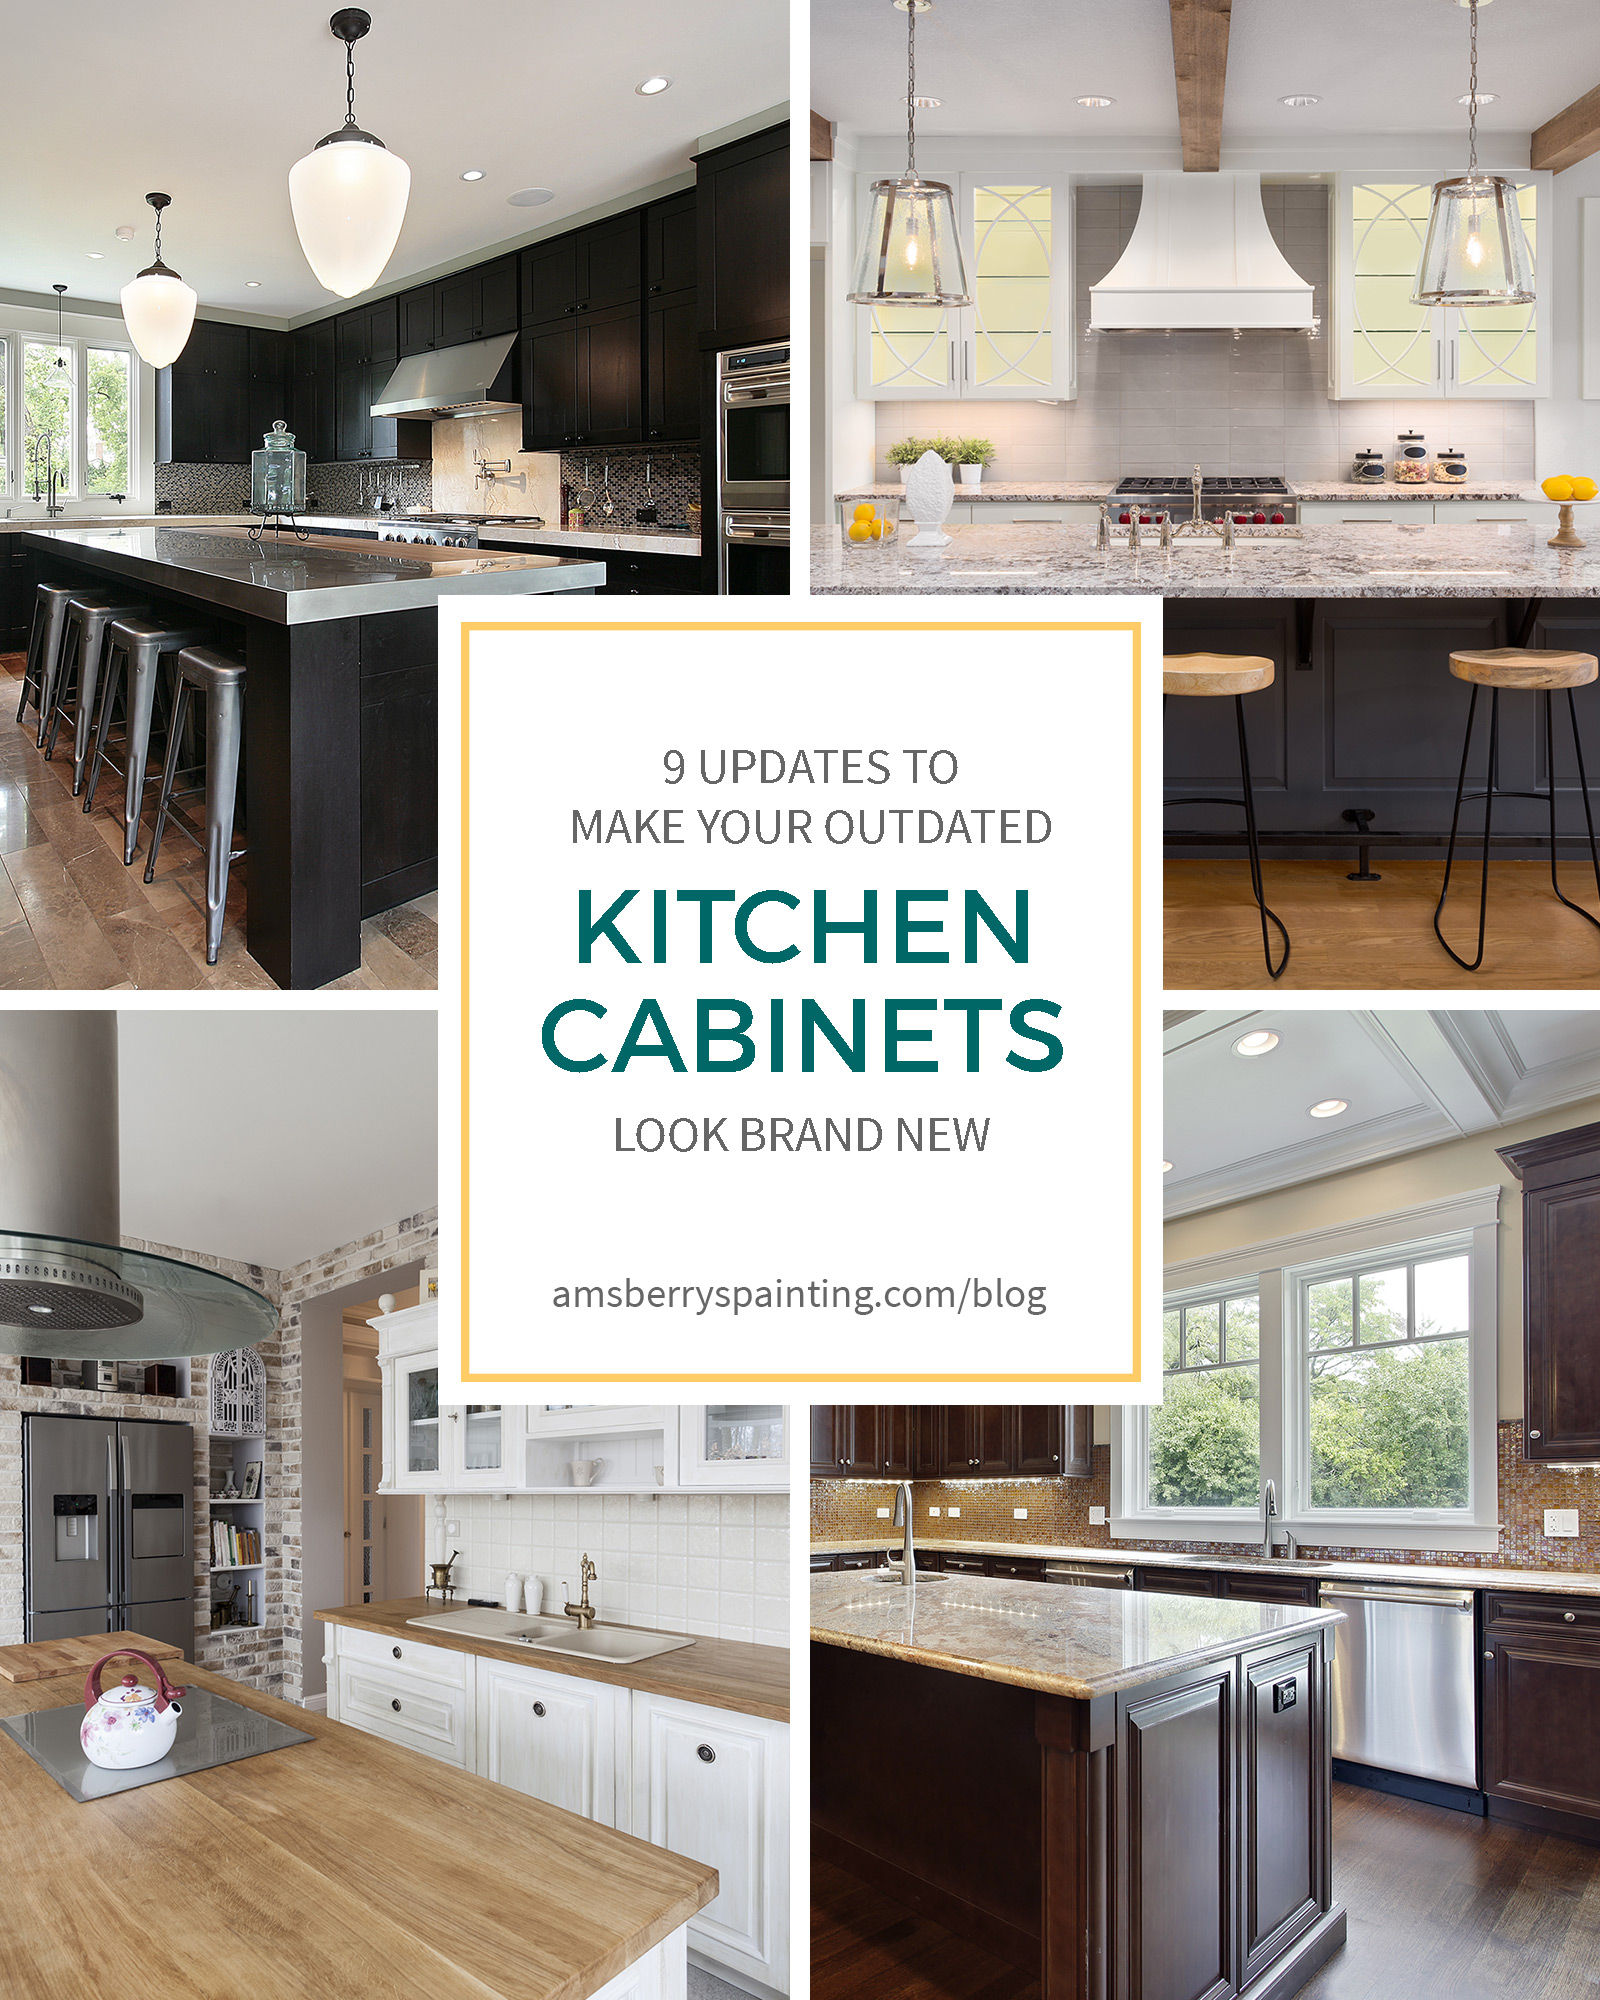 9 Upgrades To Make Your Outdated Kitchen Cabinets Look Brand New